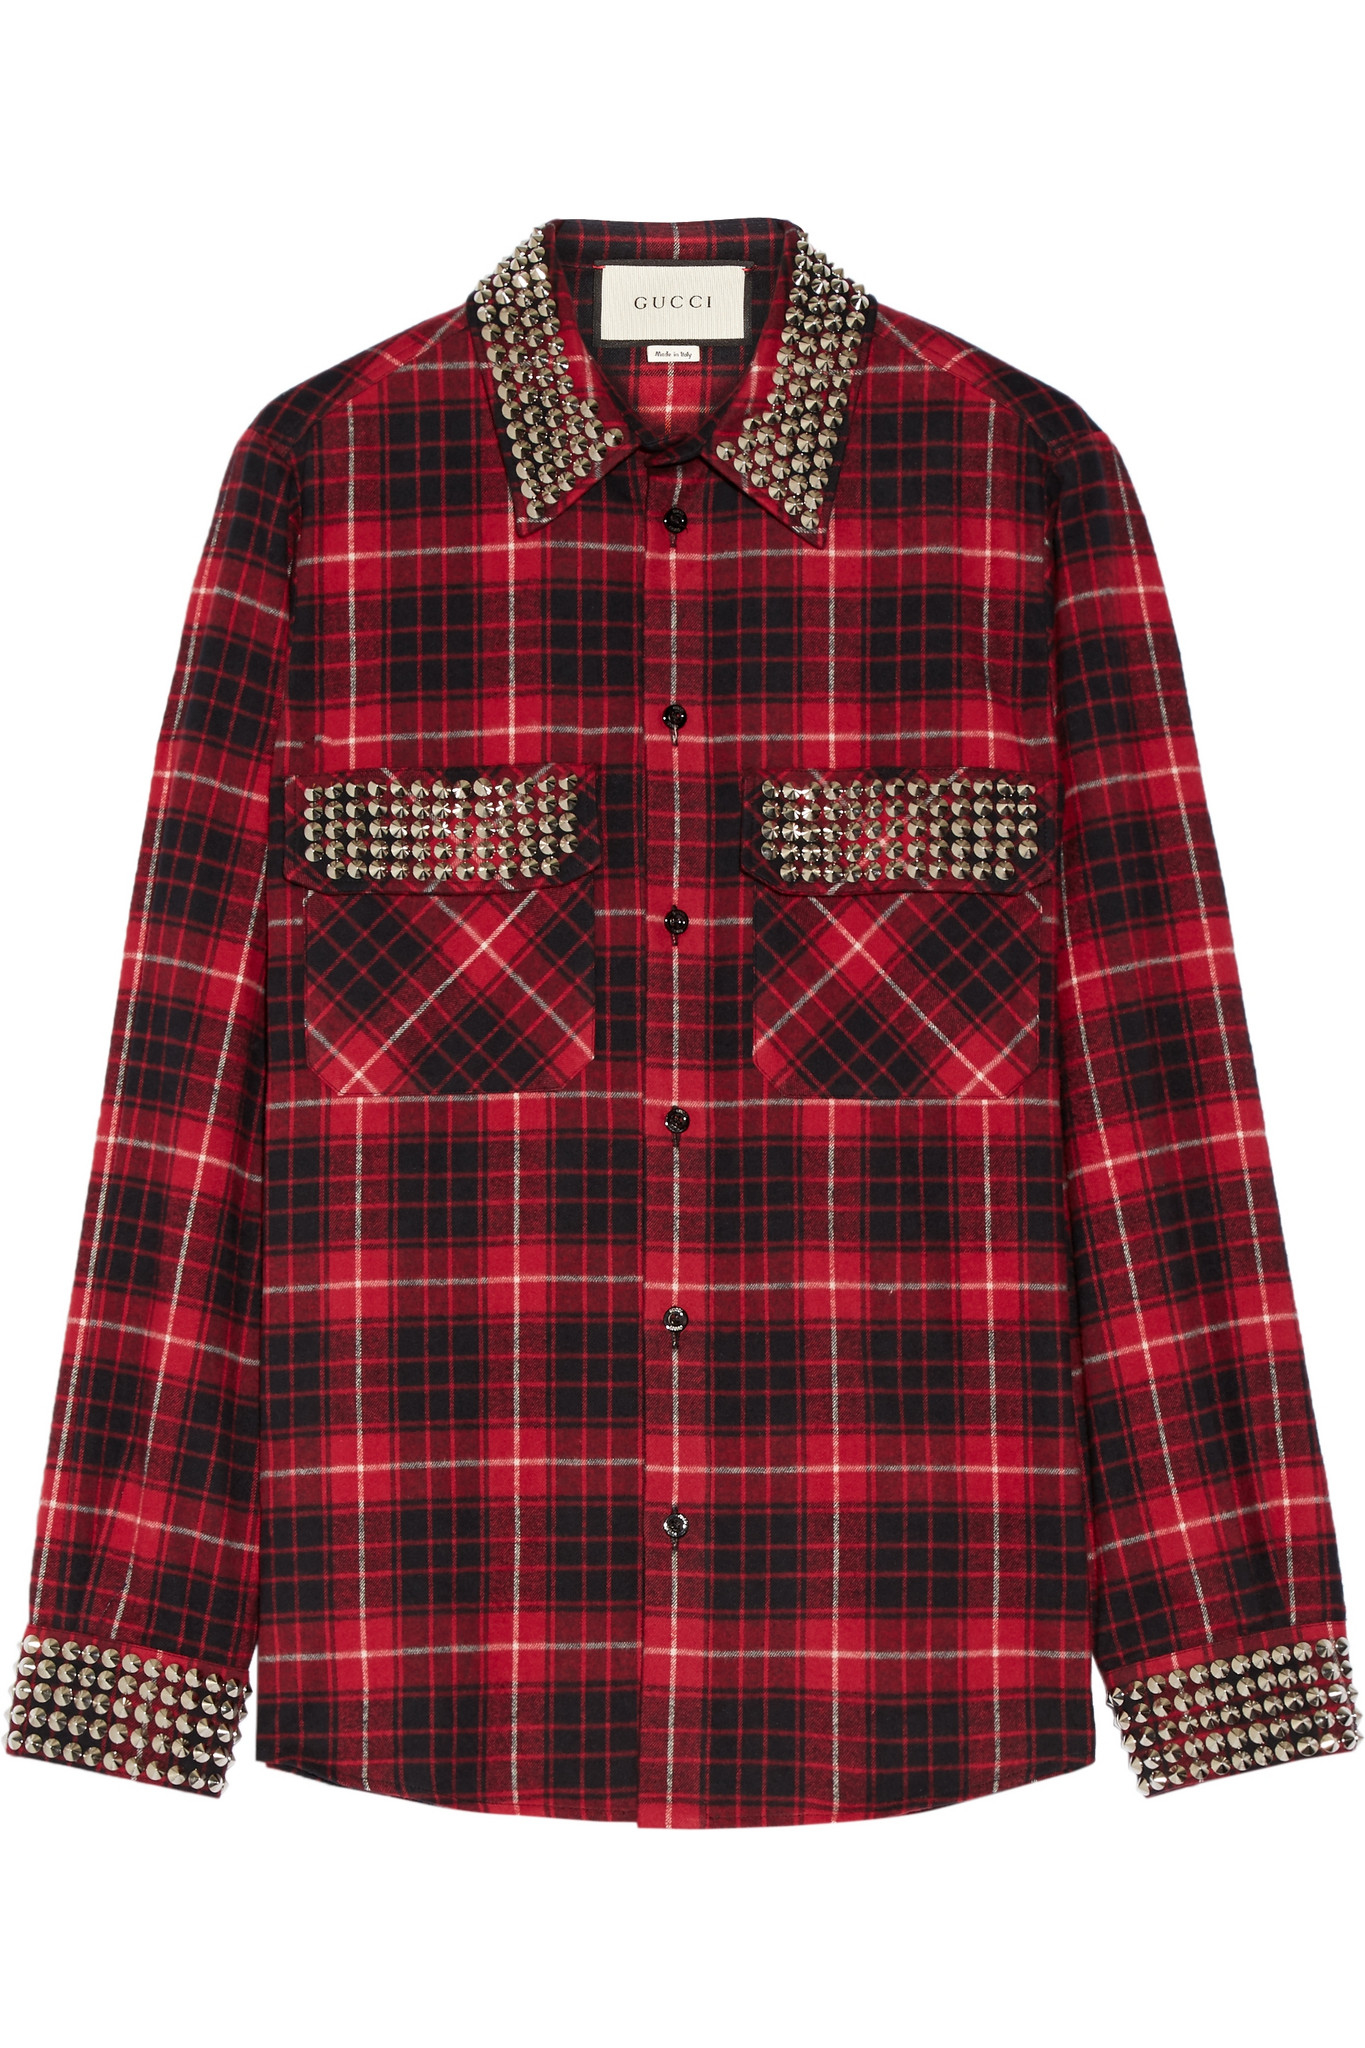 lyst gucci embellished plaid cotton flannel shirt in red. Black Bedroom Furniture Sets. Home Design Ideas